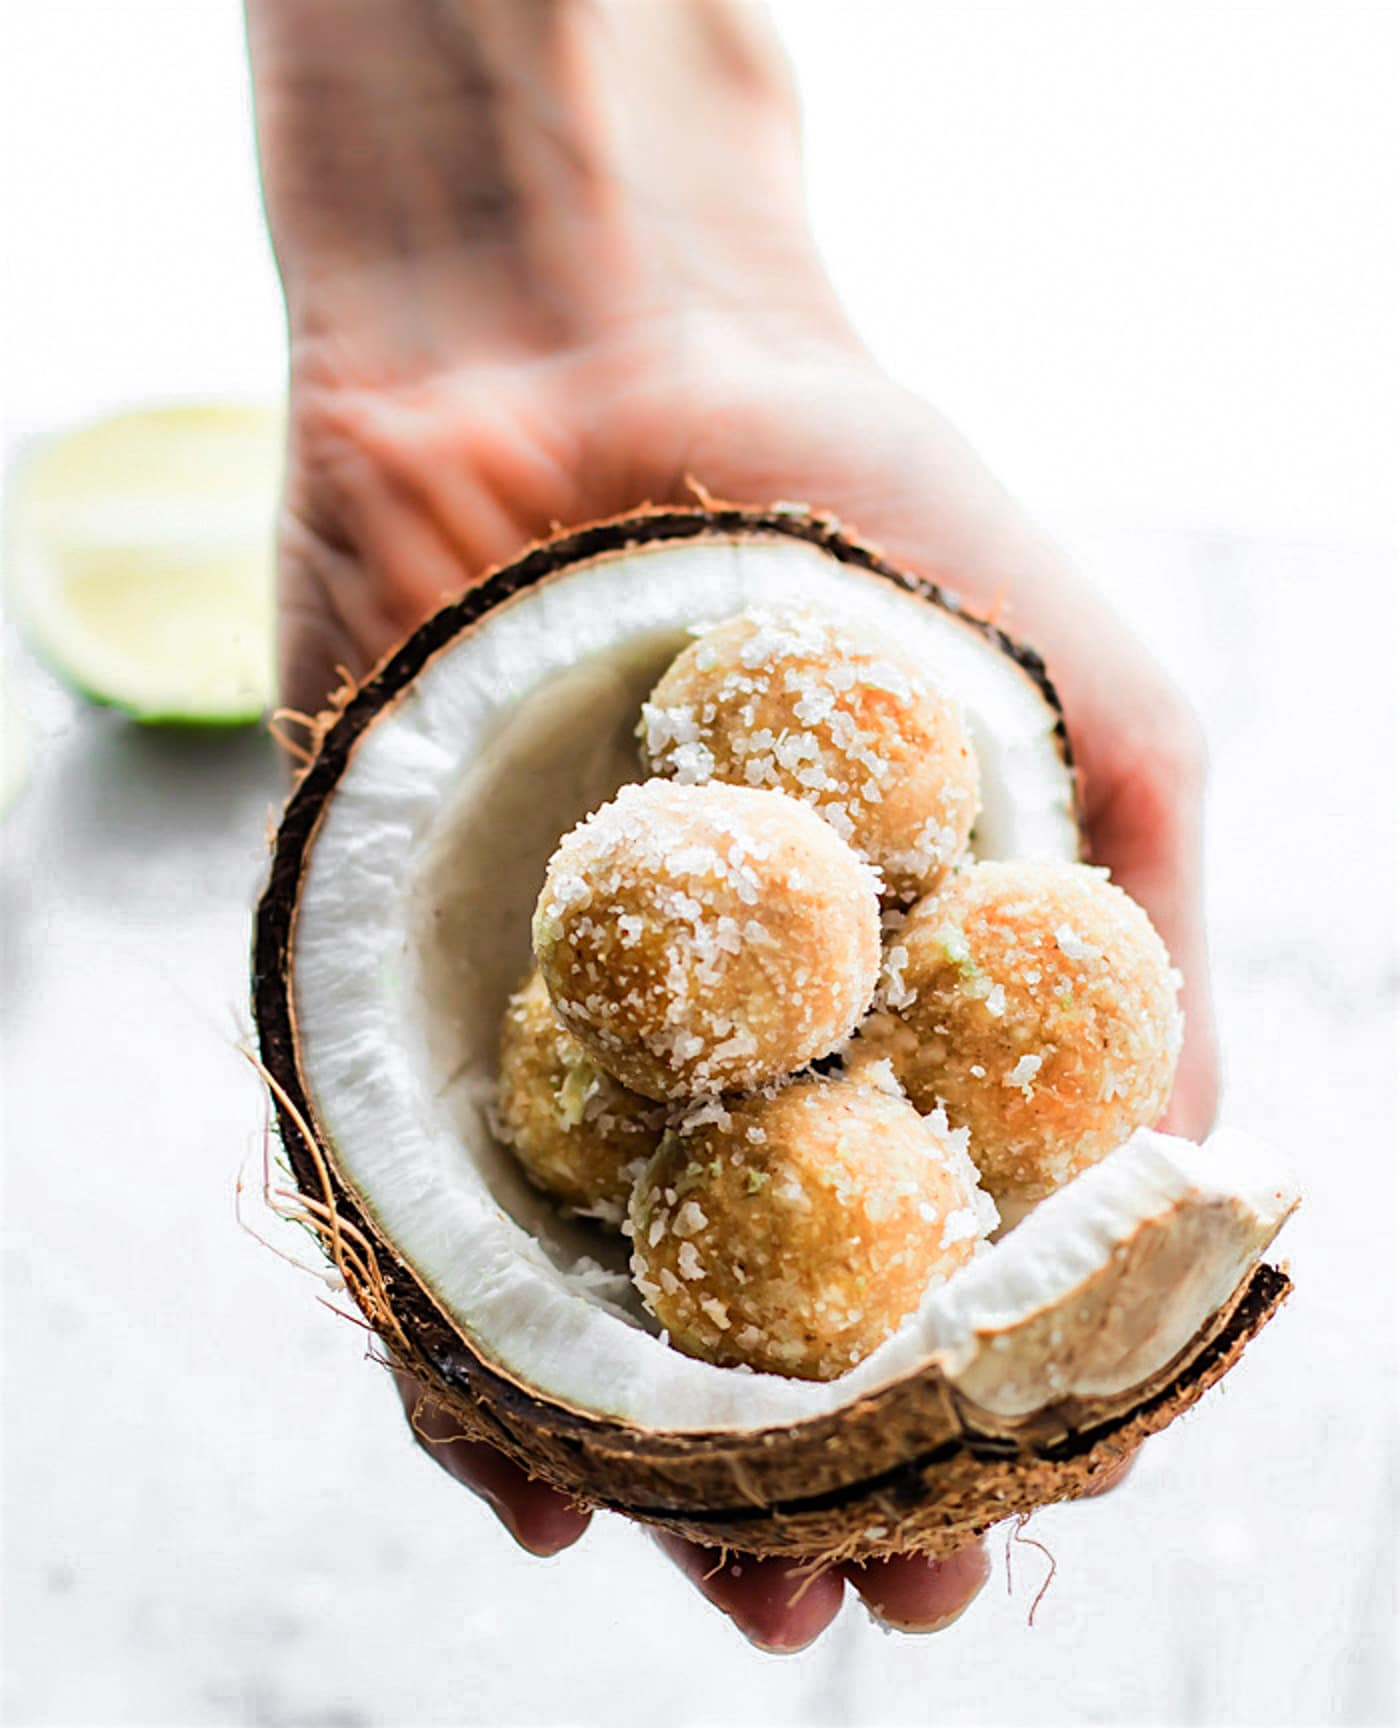 No Bake Coconut Margarita Bites! Super simple no bake coconut margarita treats in dessert bite form! These bites are naturally gluten free, paleo friendly, and vegan! Bites that actually taste like a frozen margarita with natural lime and coconut flavors.